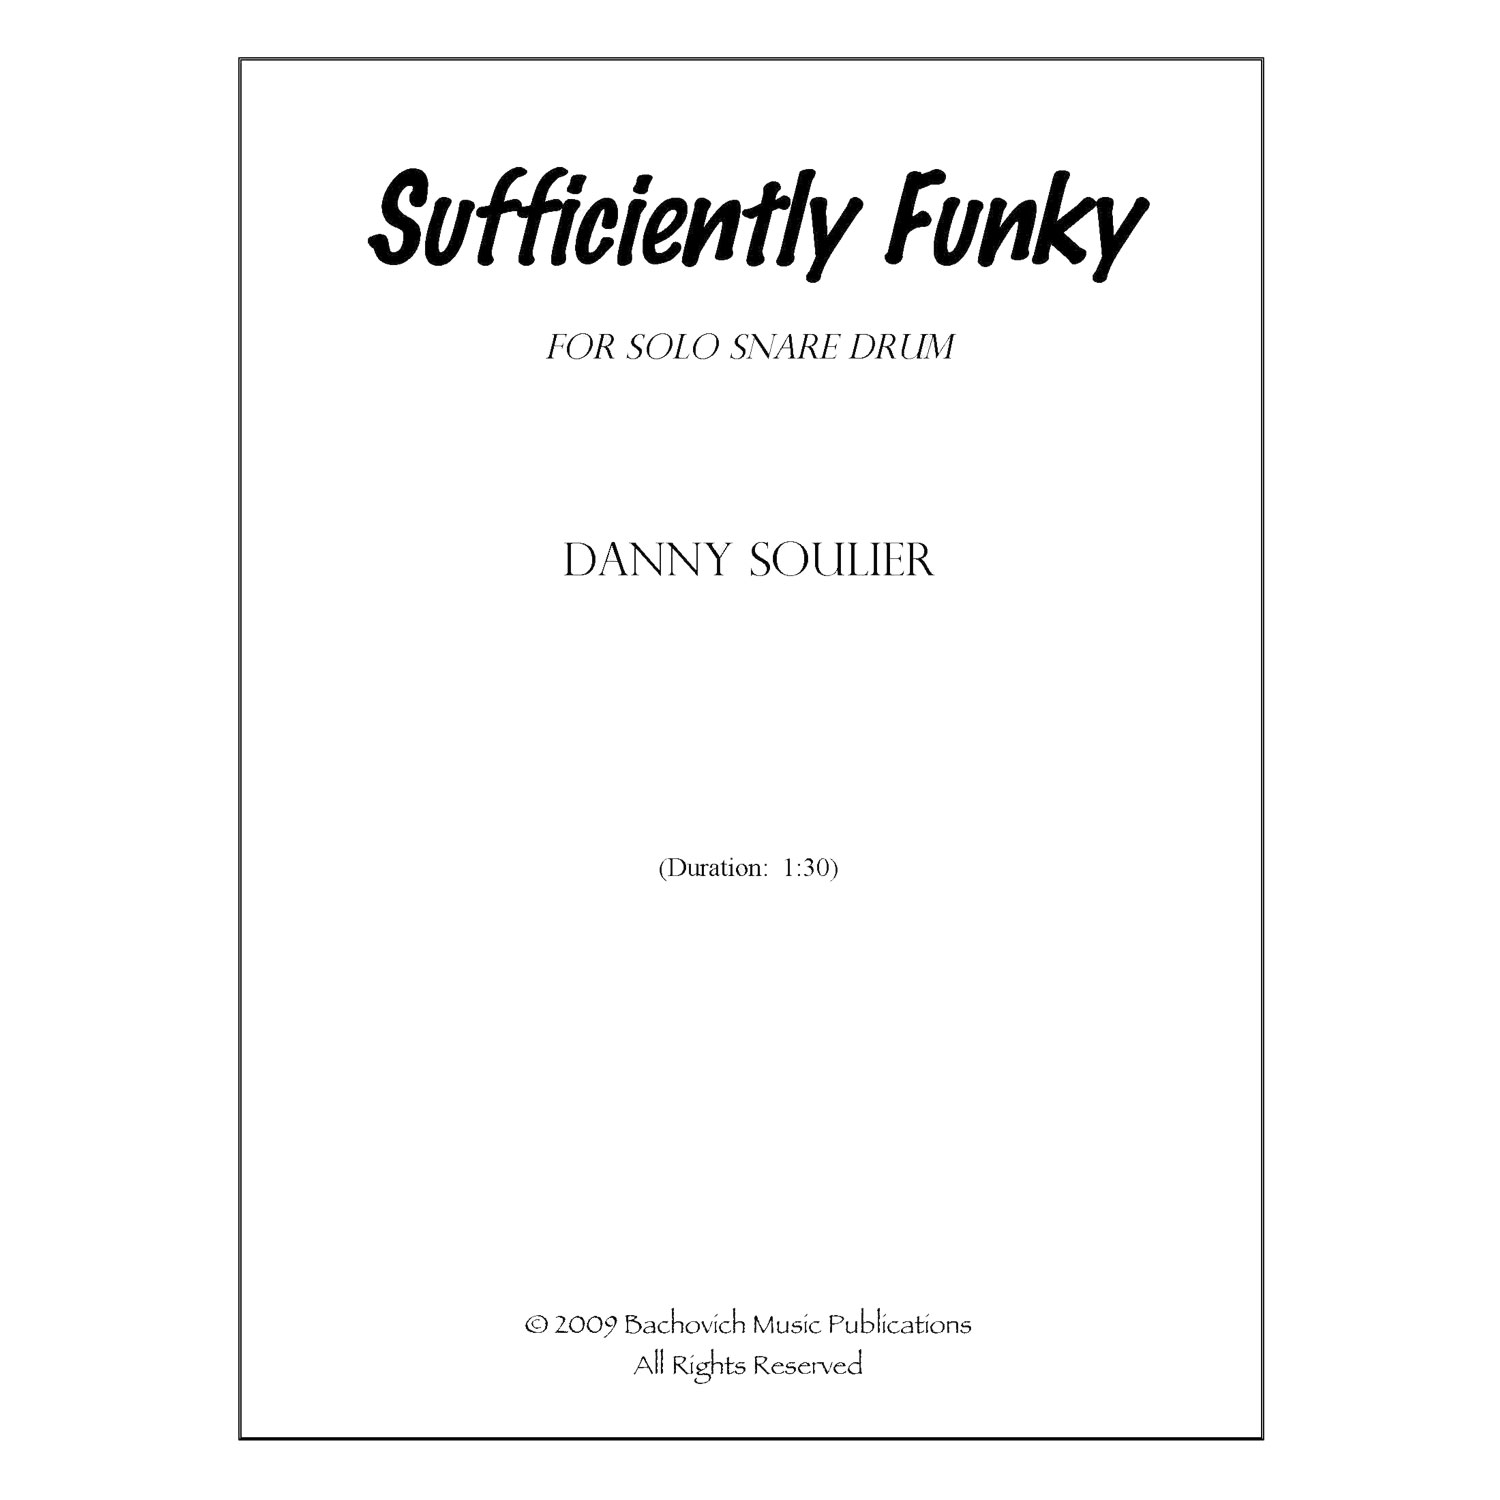 Sufficiently Funky By Danny Soulier